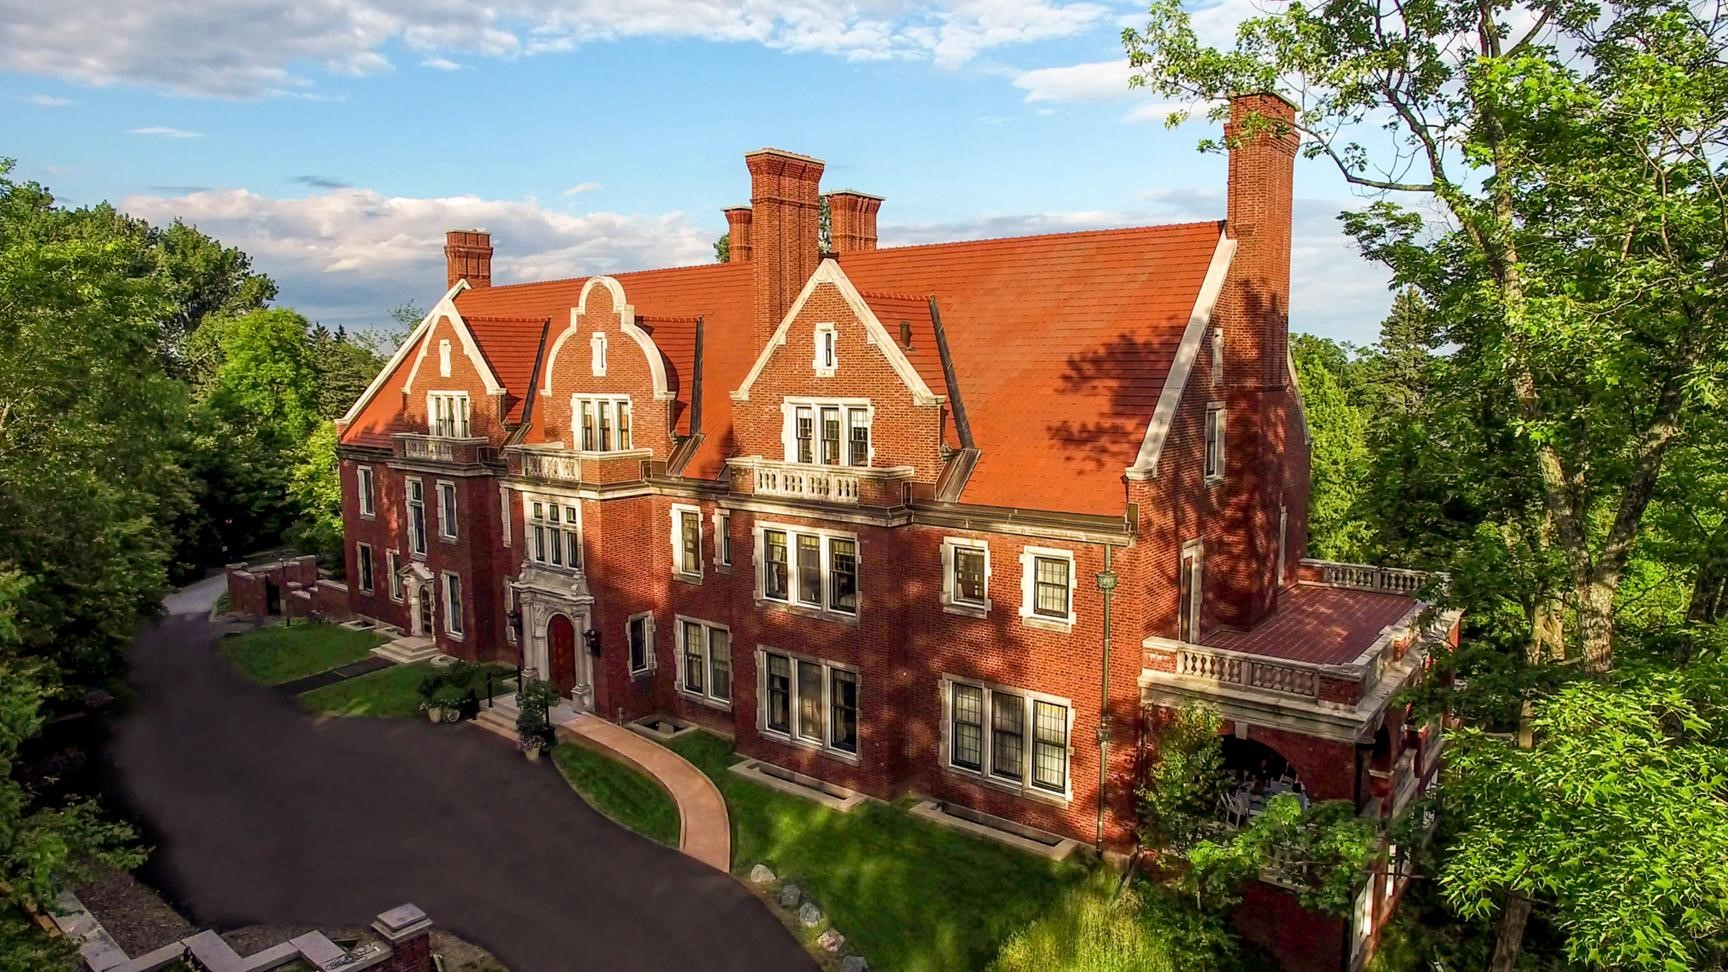 Image of the front of Glensheen house, a red brick Jacobean style mansion with a blacktop road and curved wheelchair ramp visible in front.